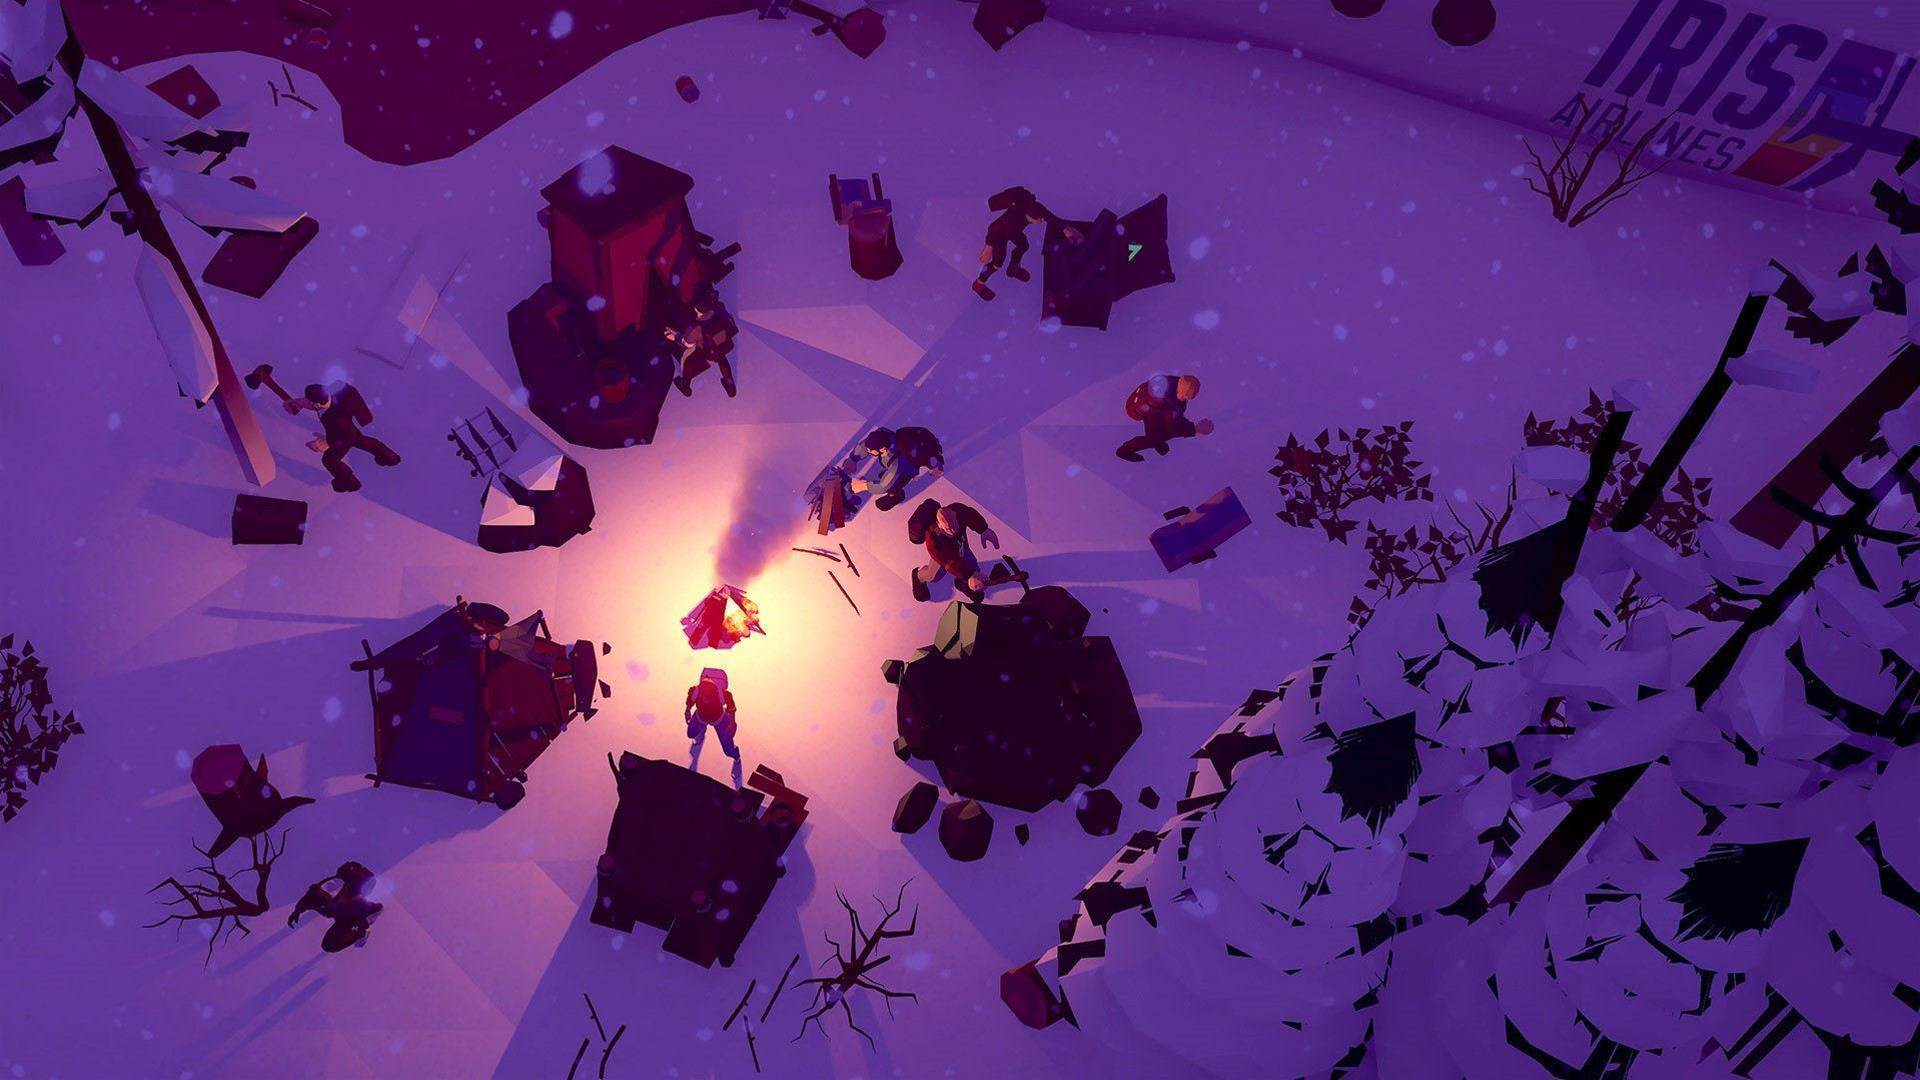 Ice-cold screenshots for Early Access survival game The Wild Eight